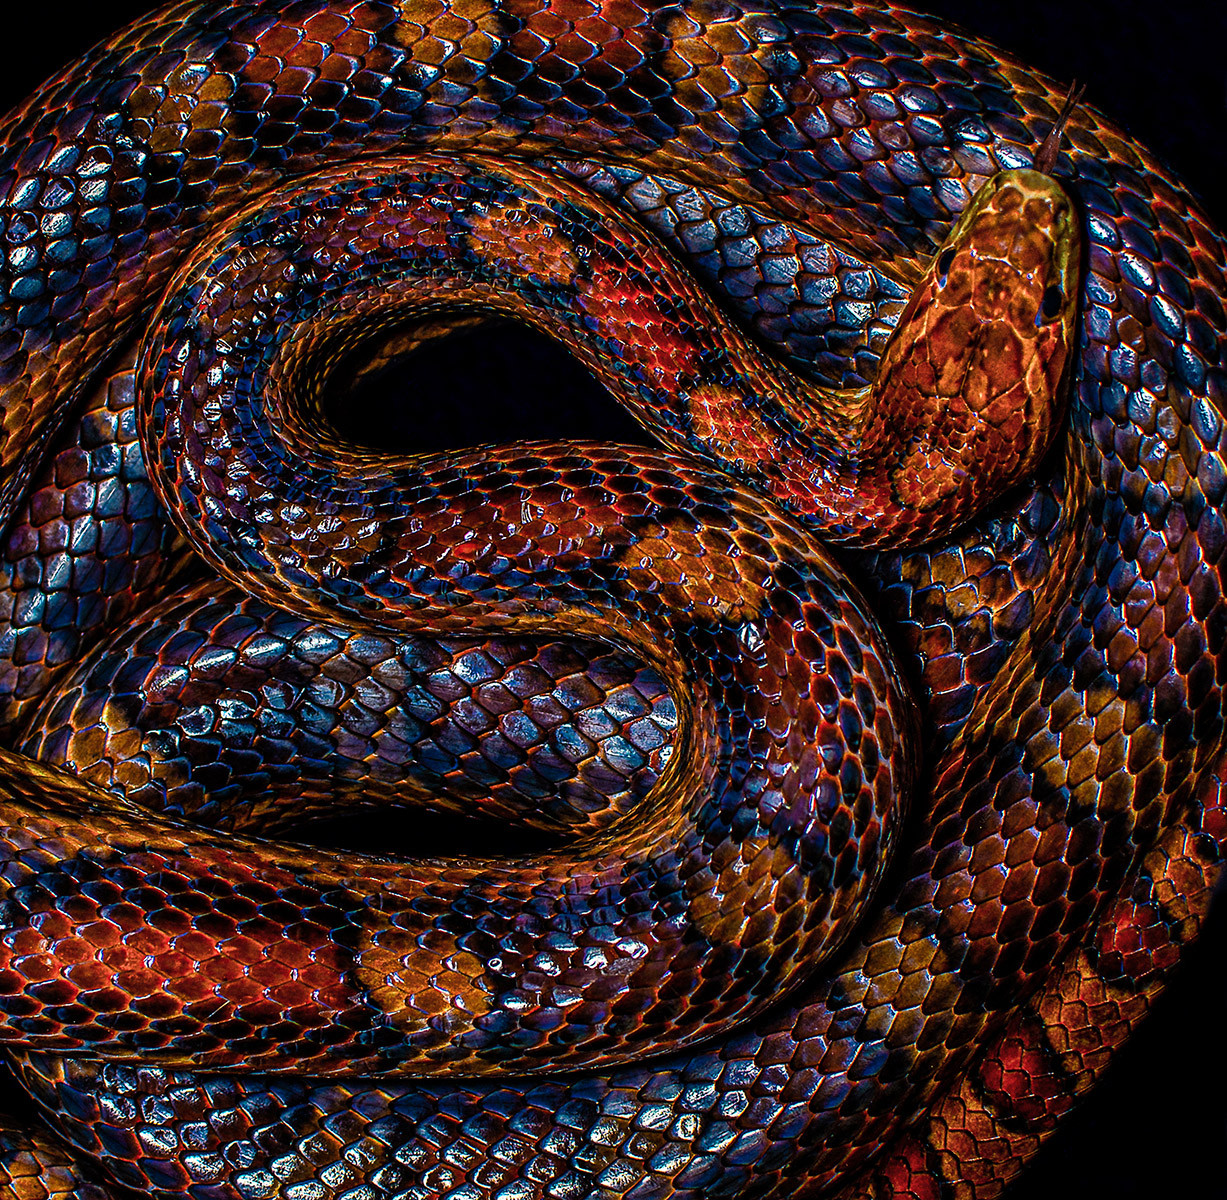 COLOUR - Snake Skin by Brian Larkin (12 marks)